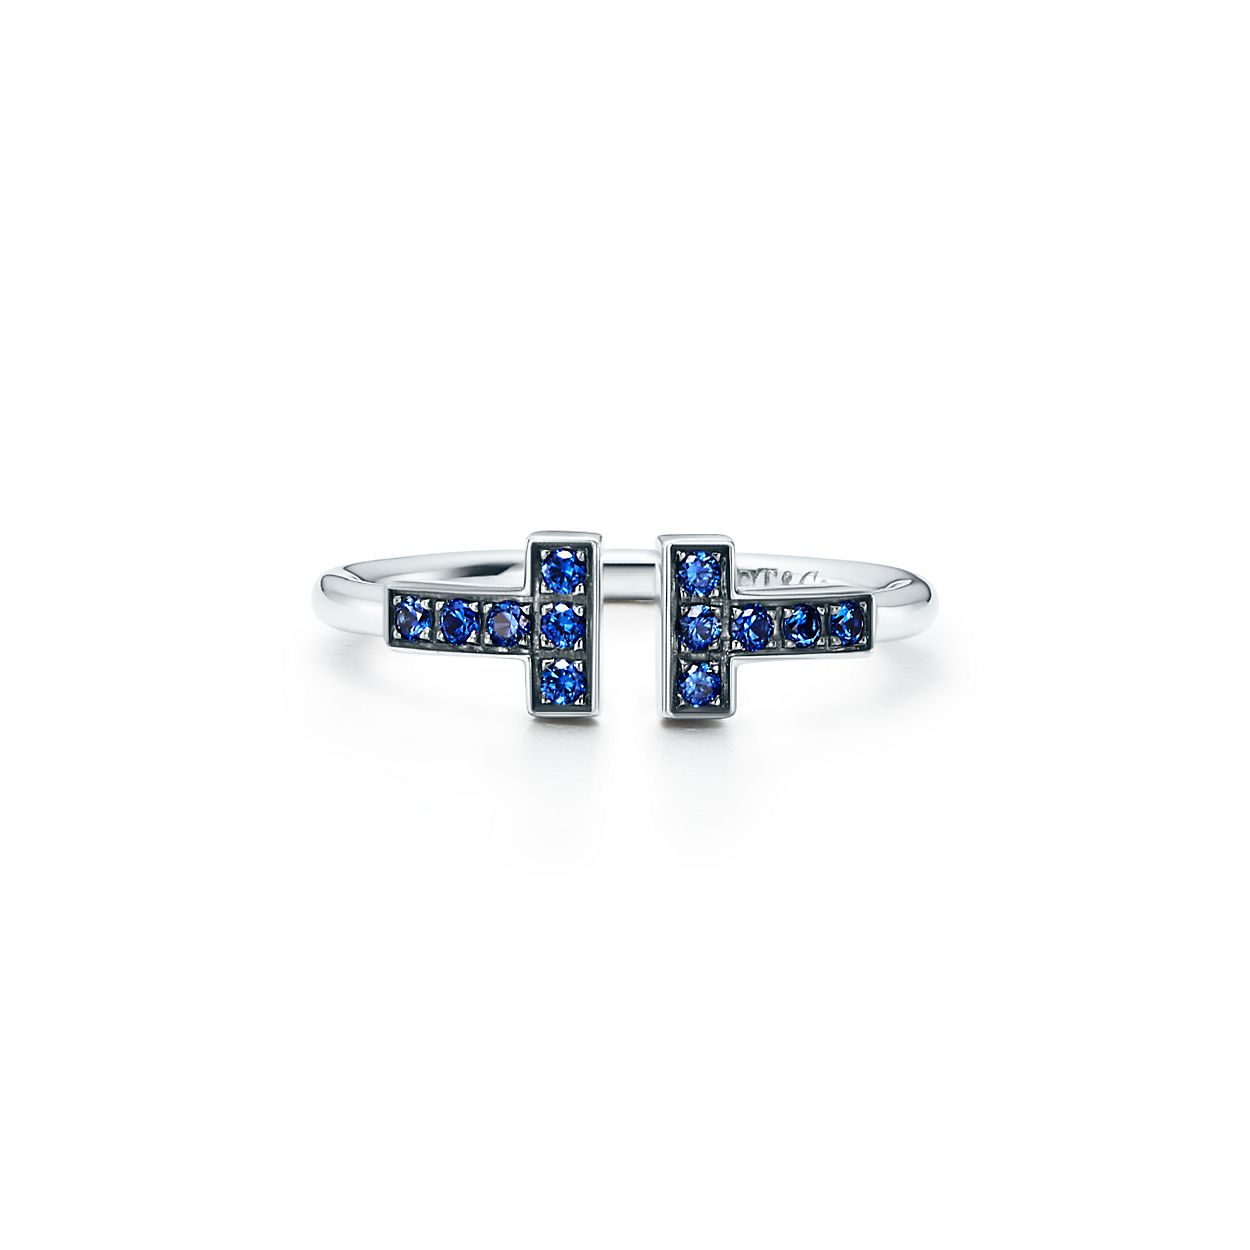 Tiffany T wire ring in 18k white gold with sapphires. | Tiffany & Co.